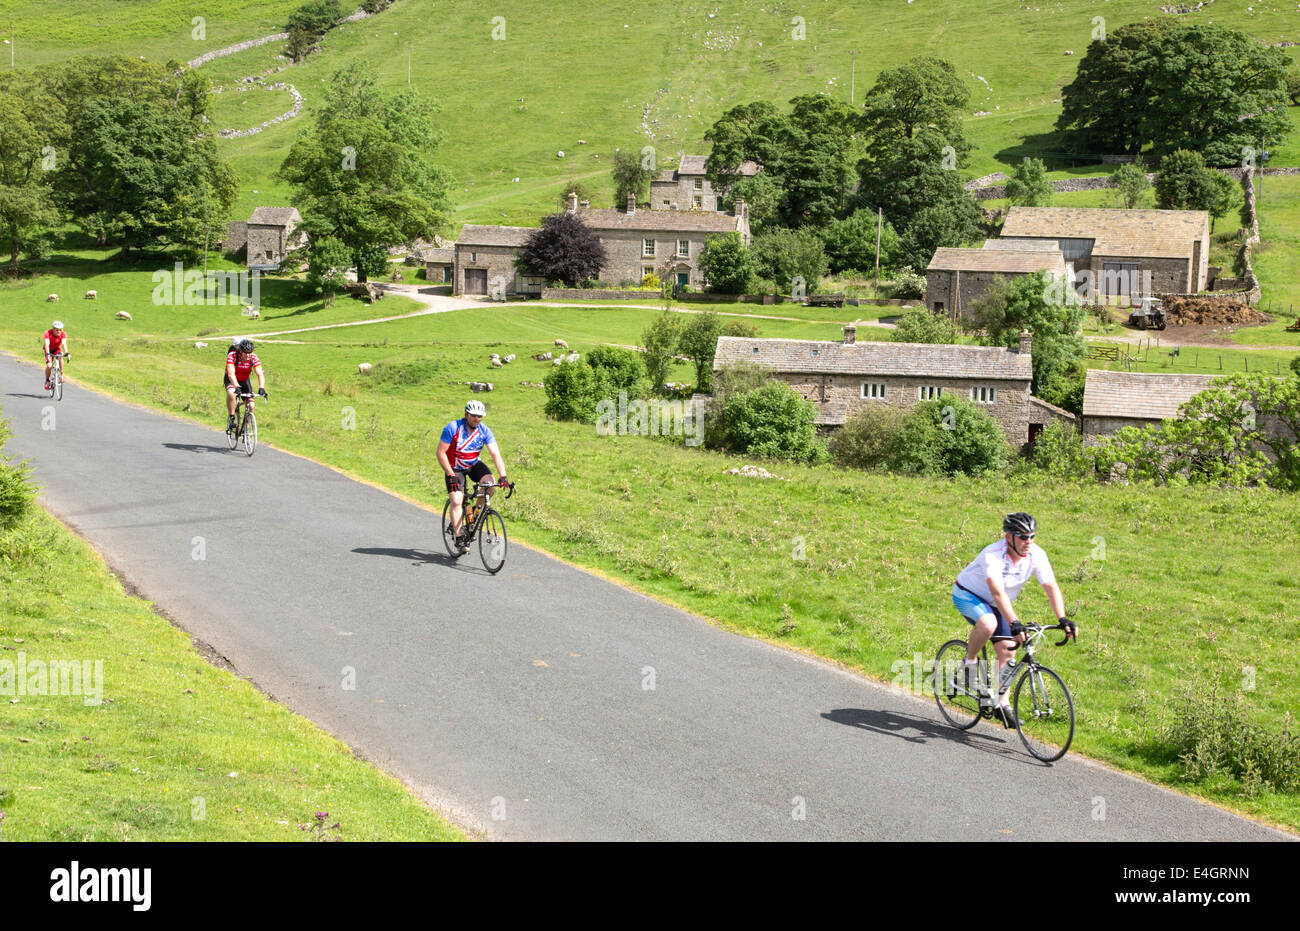 Cyclists passing Yockenthwaite, Wharfdale in the Yorkshire Dales National Park, North Yorkshire, England, UK - Stock Image